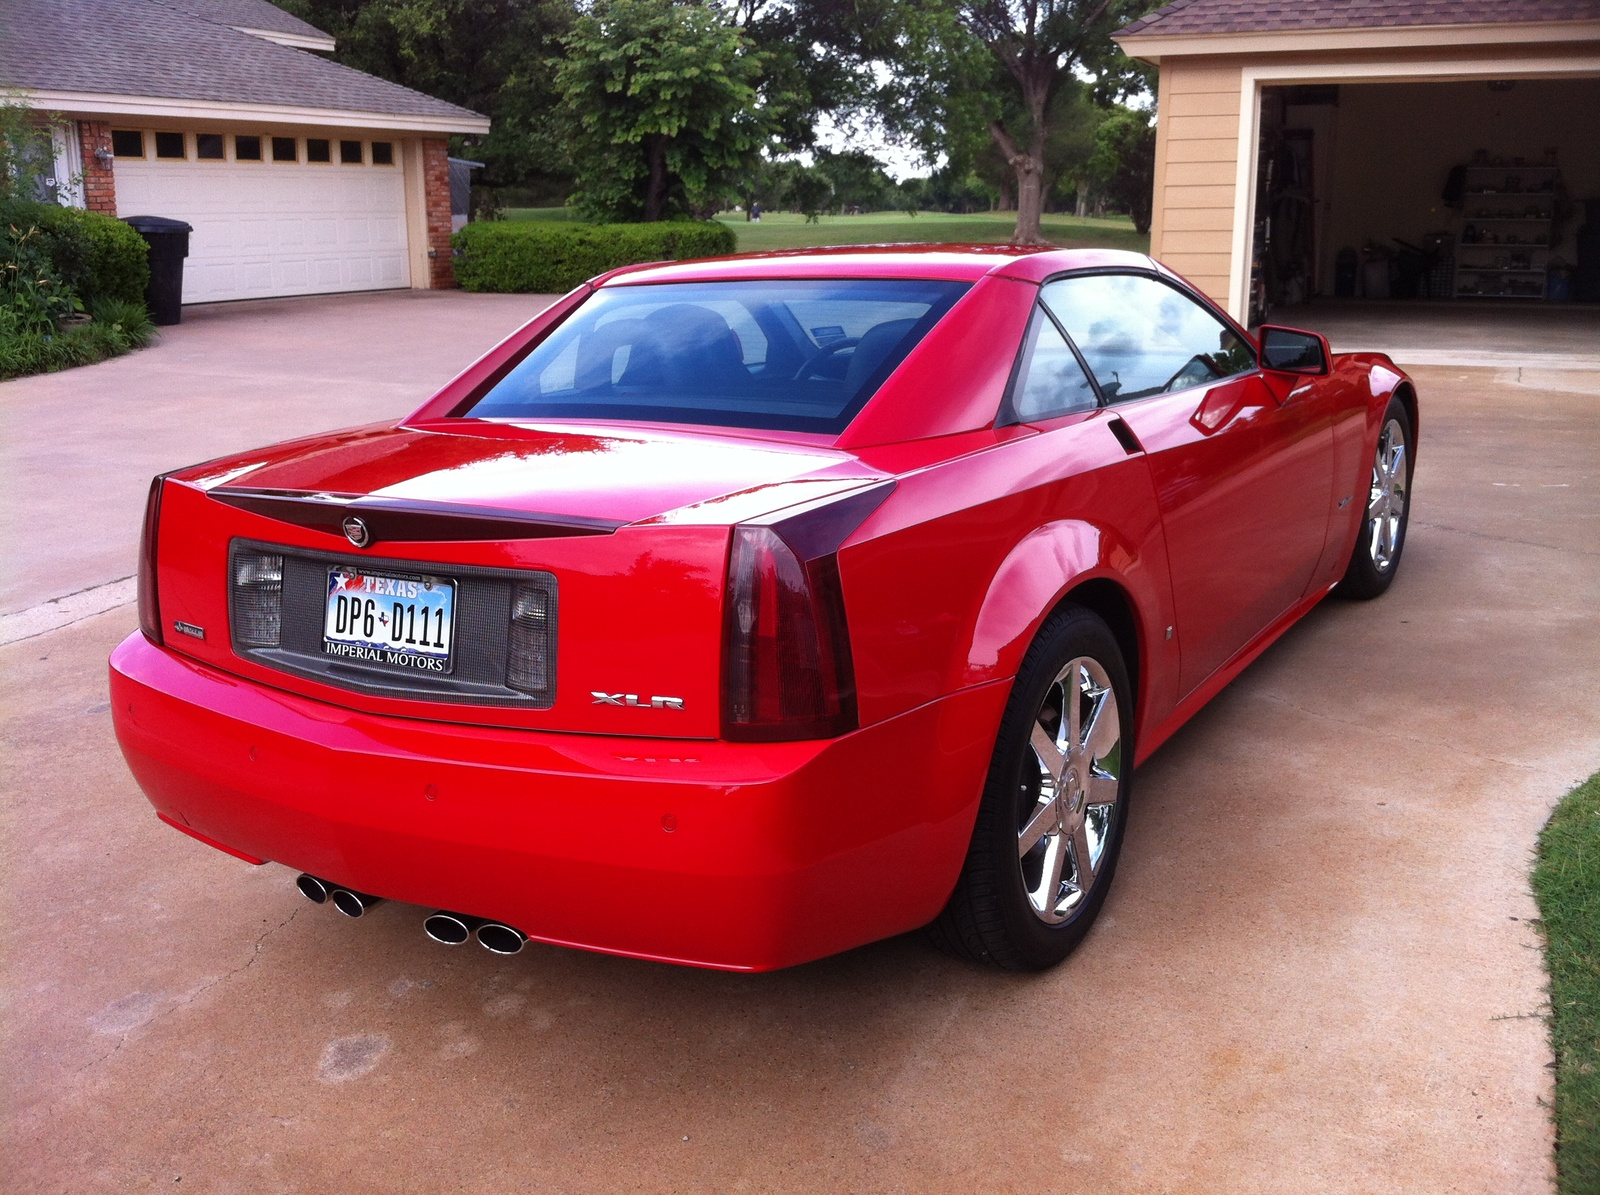 Cadillac XLR Passion Red Limited Edition #8